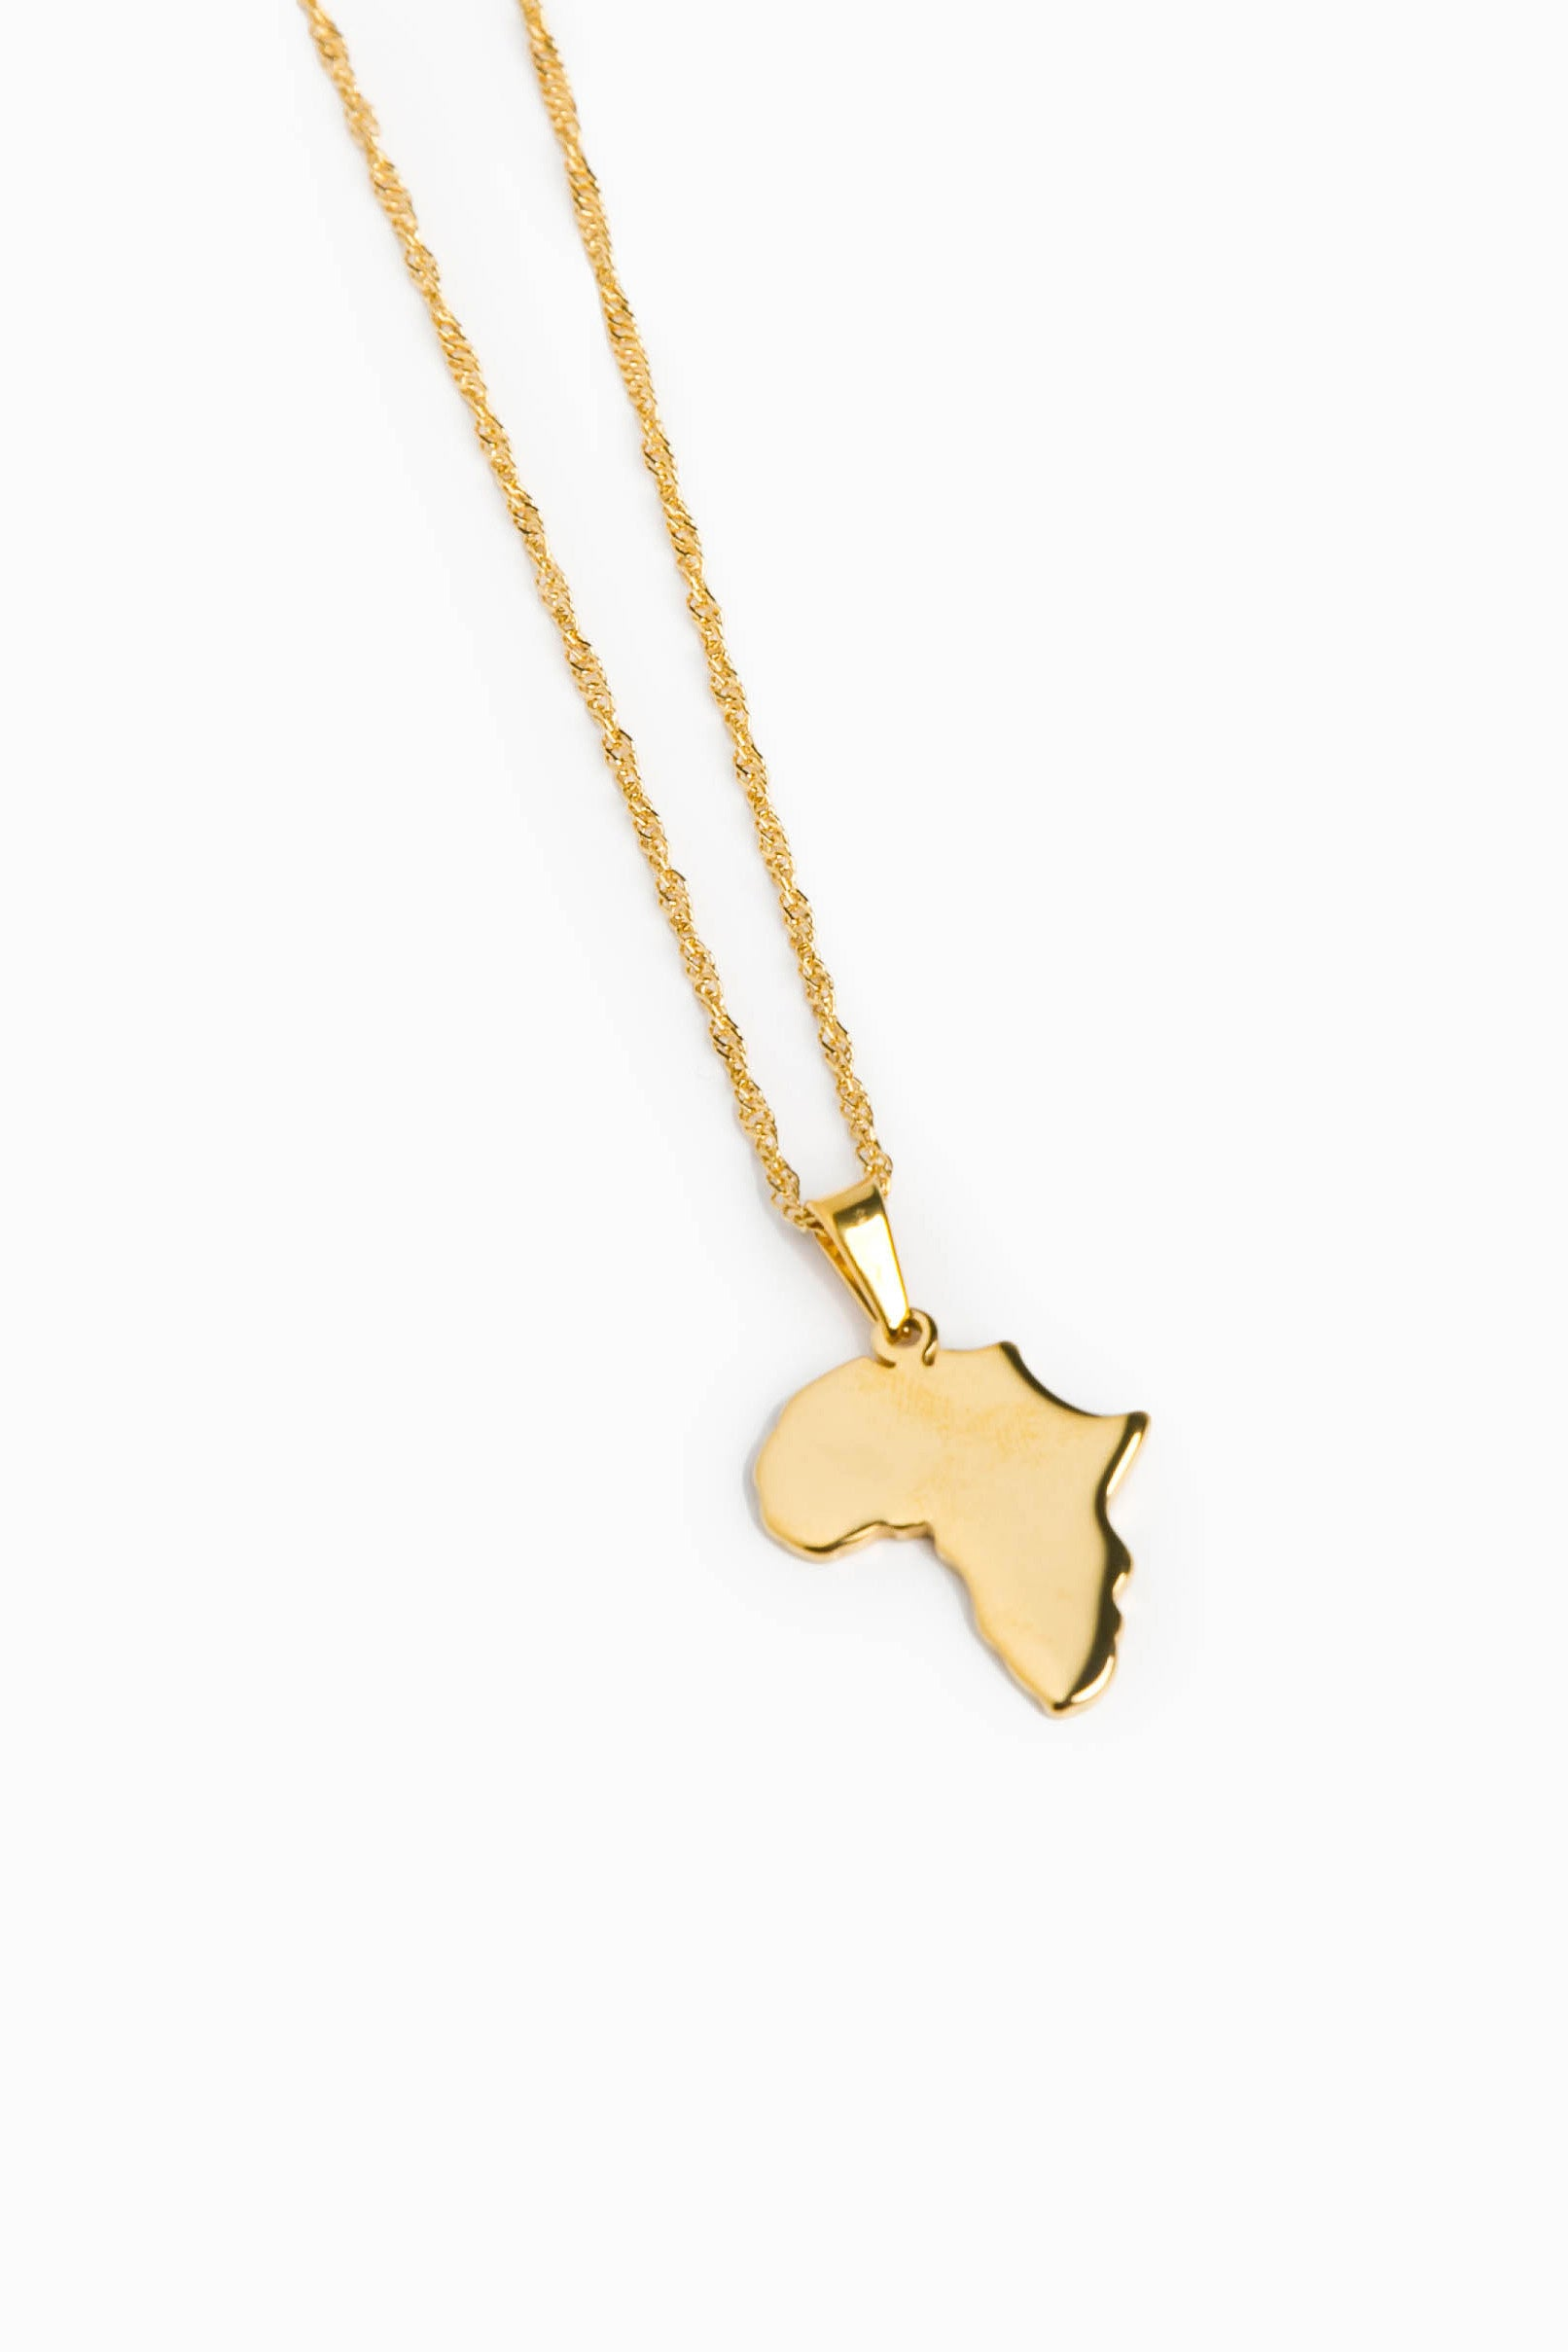 Africa Map Pendant Africa Map Necklace   East Africana